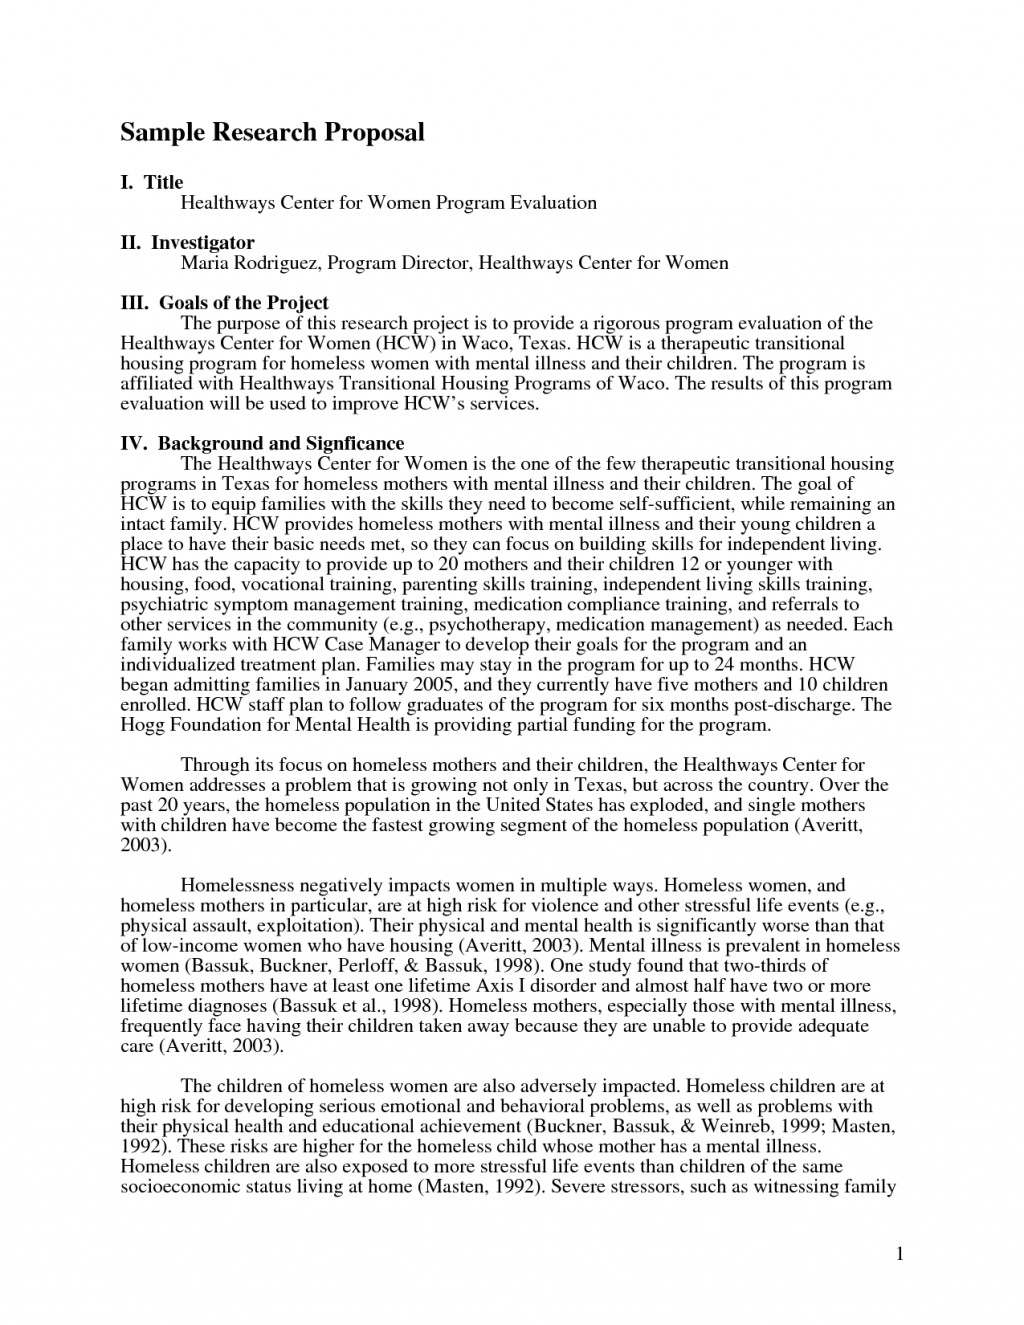 011 Research Paper Psychology Proposal Sample 612686 Writingn Introduction To Top Writing An A Effective For How Write Powerpoint Ppt Large